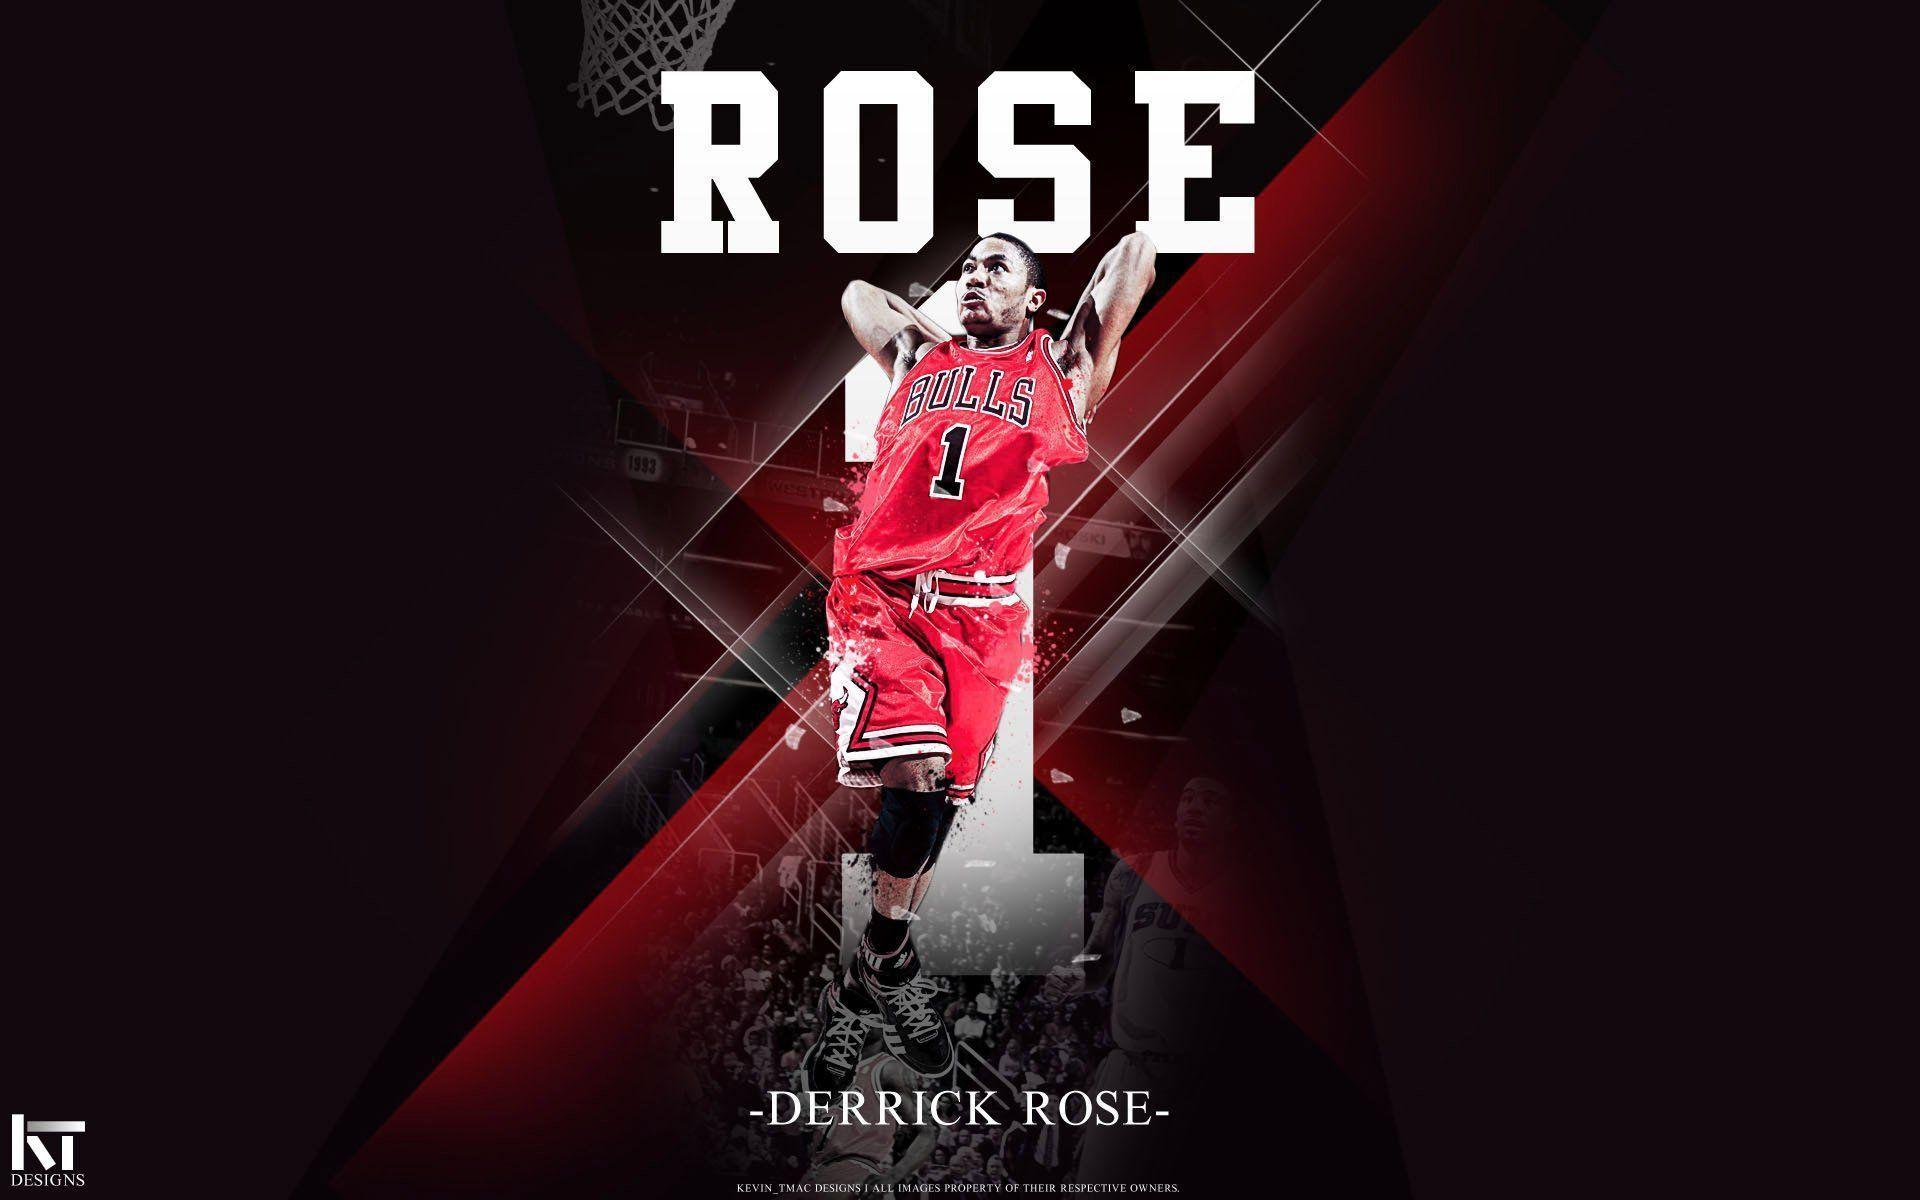 derrick rose wallpaper iphone - photo #8